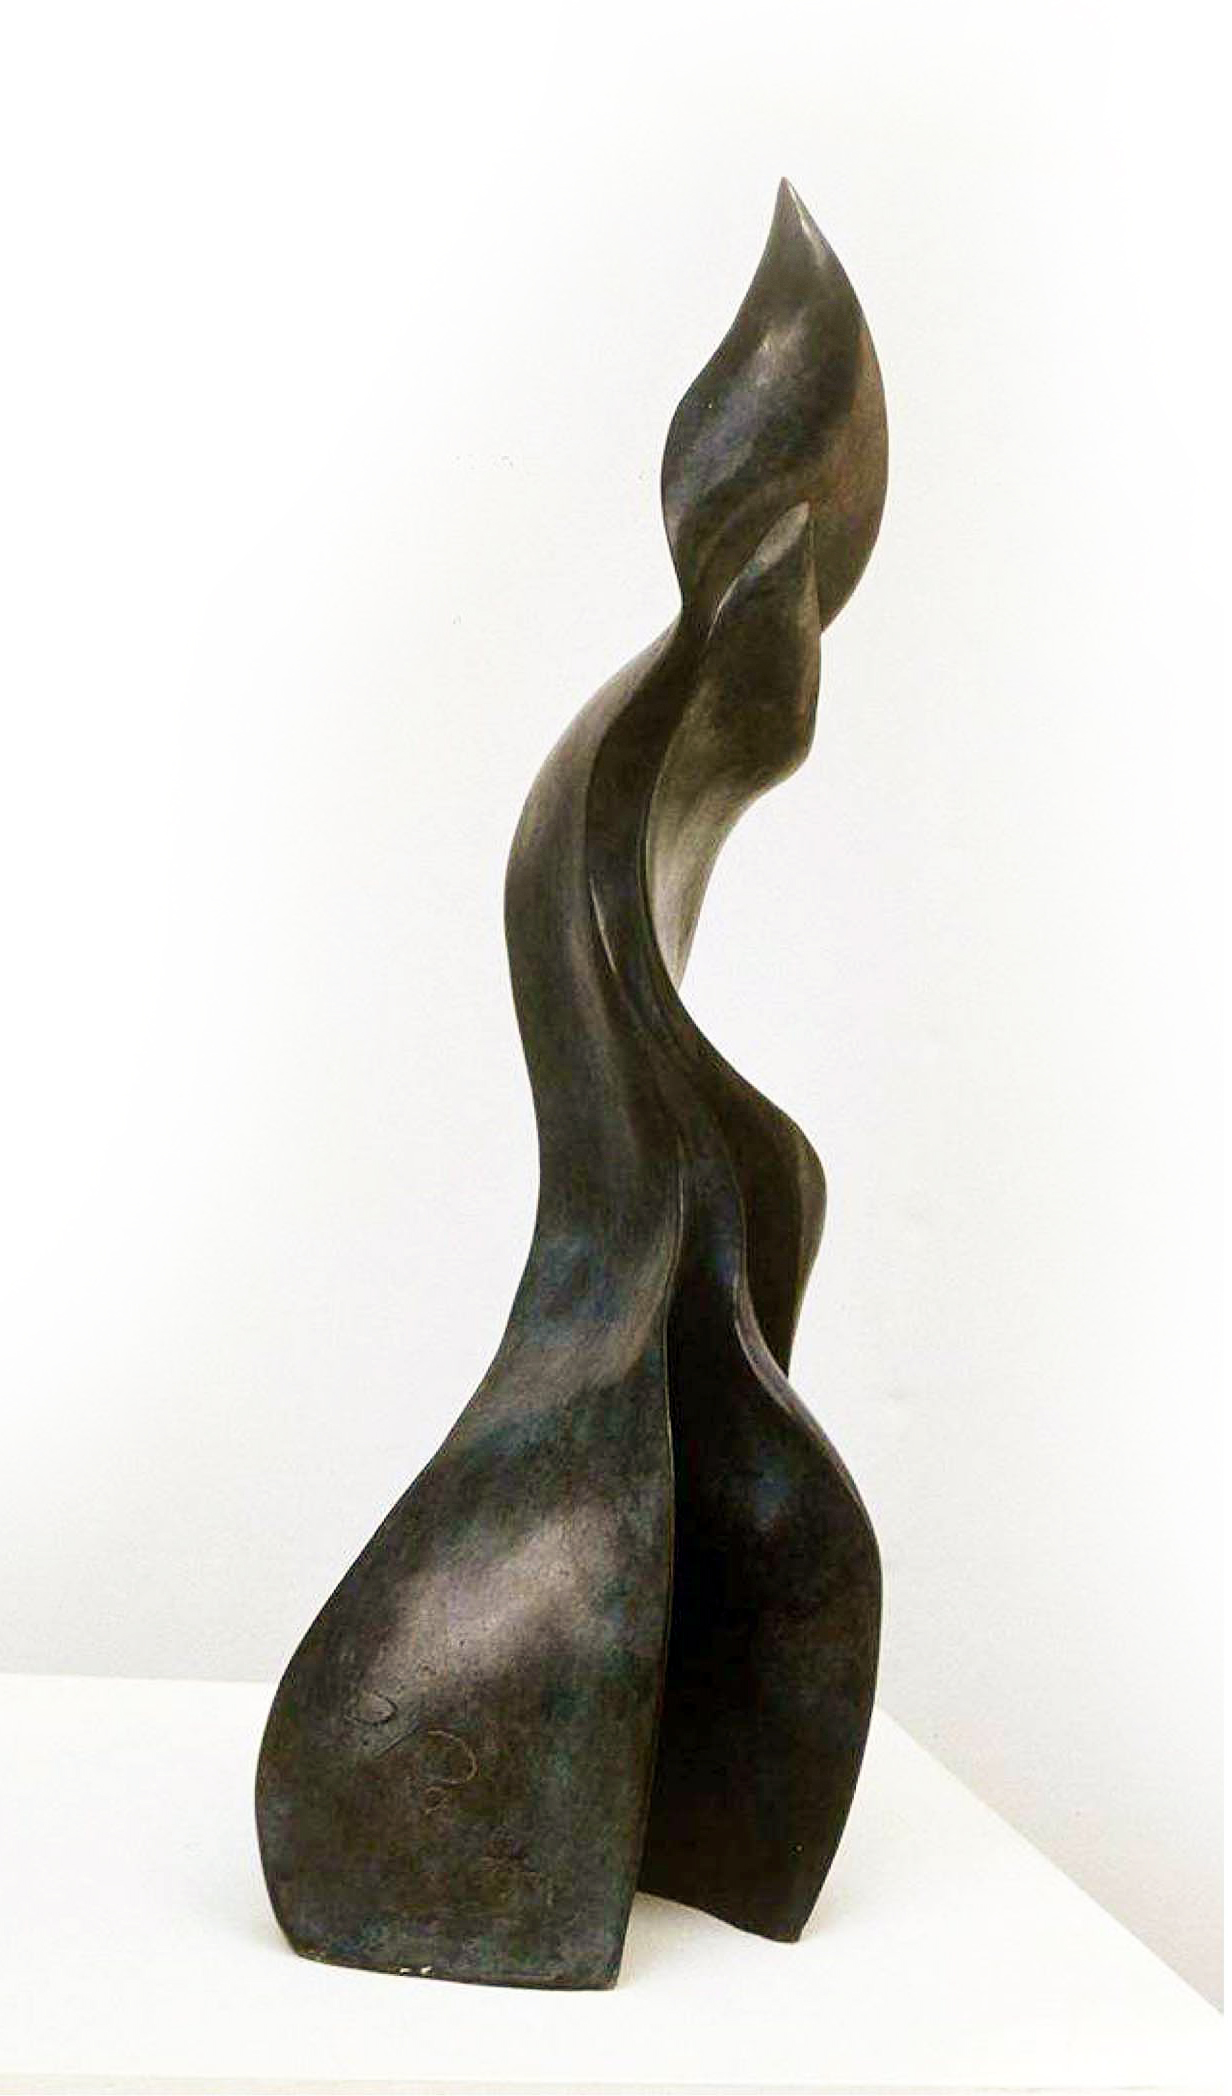 Flame 62.25.25cm patinated terracotta